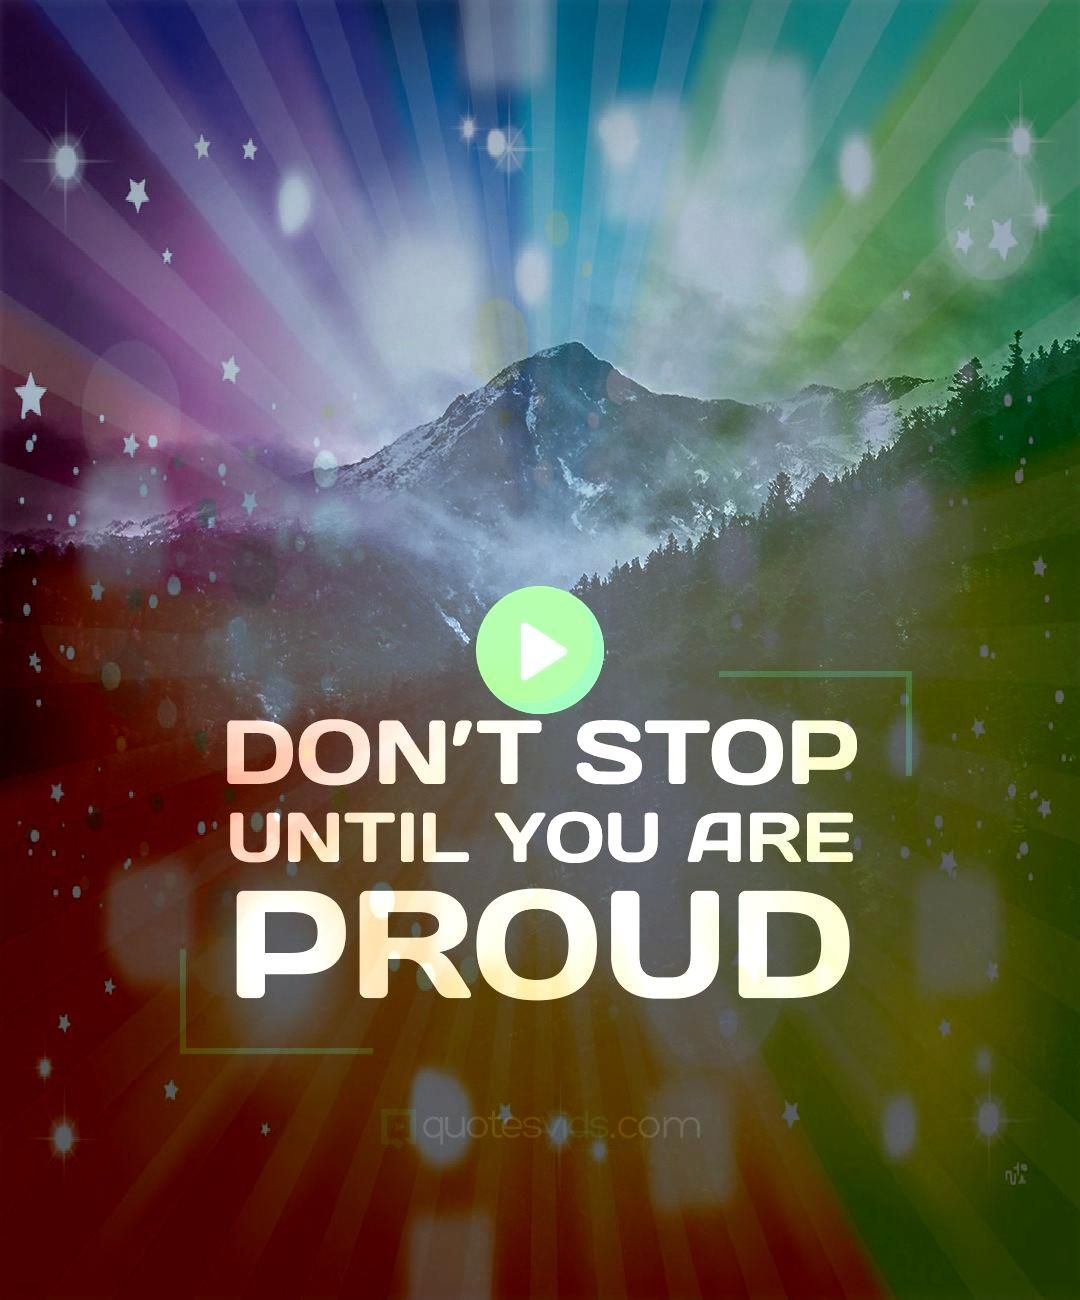 Stop until you are proud Best Motivation and Inspiration Quotes to change the way we feel about lifeBest Motivation and Inspiration Quotes to change the way we feel about...